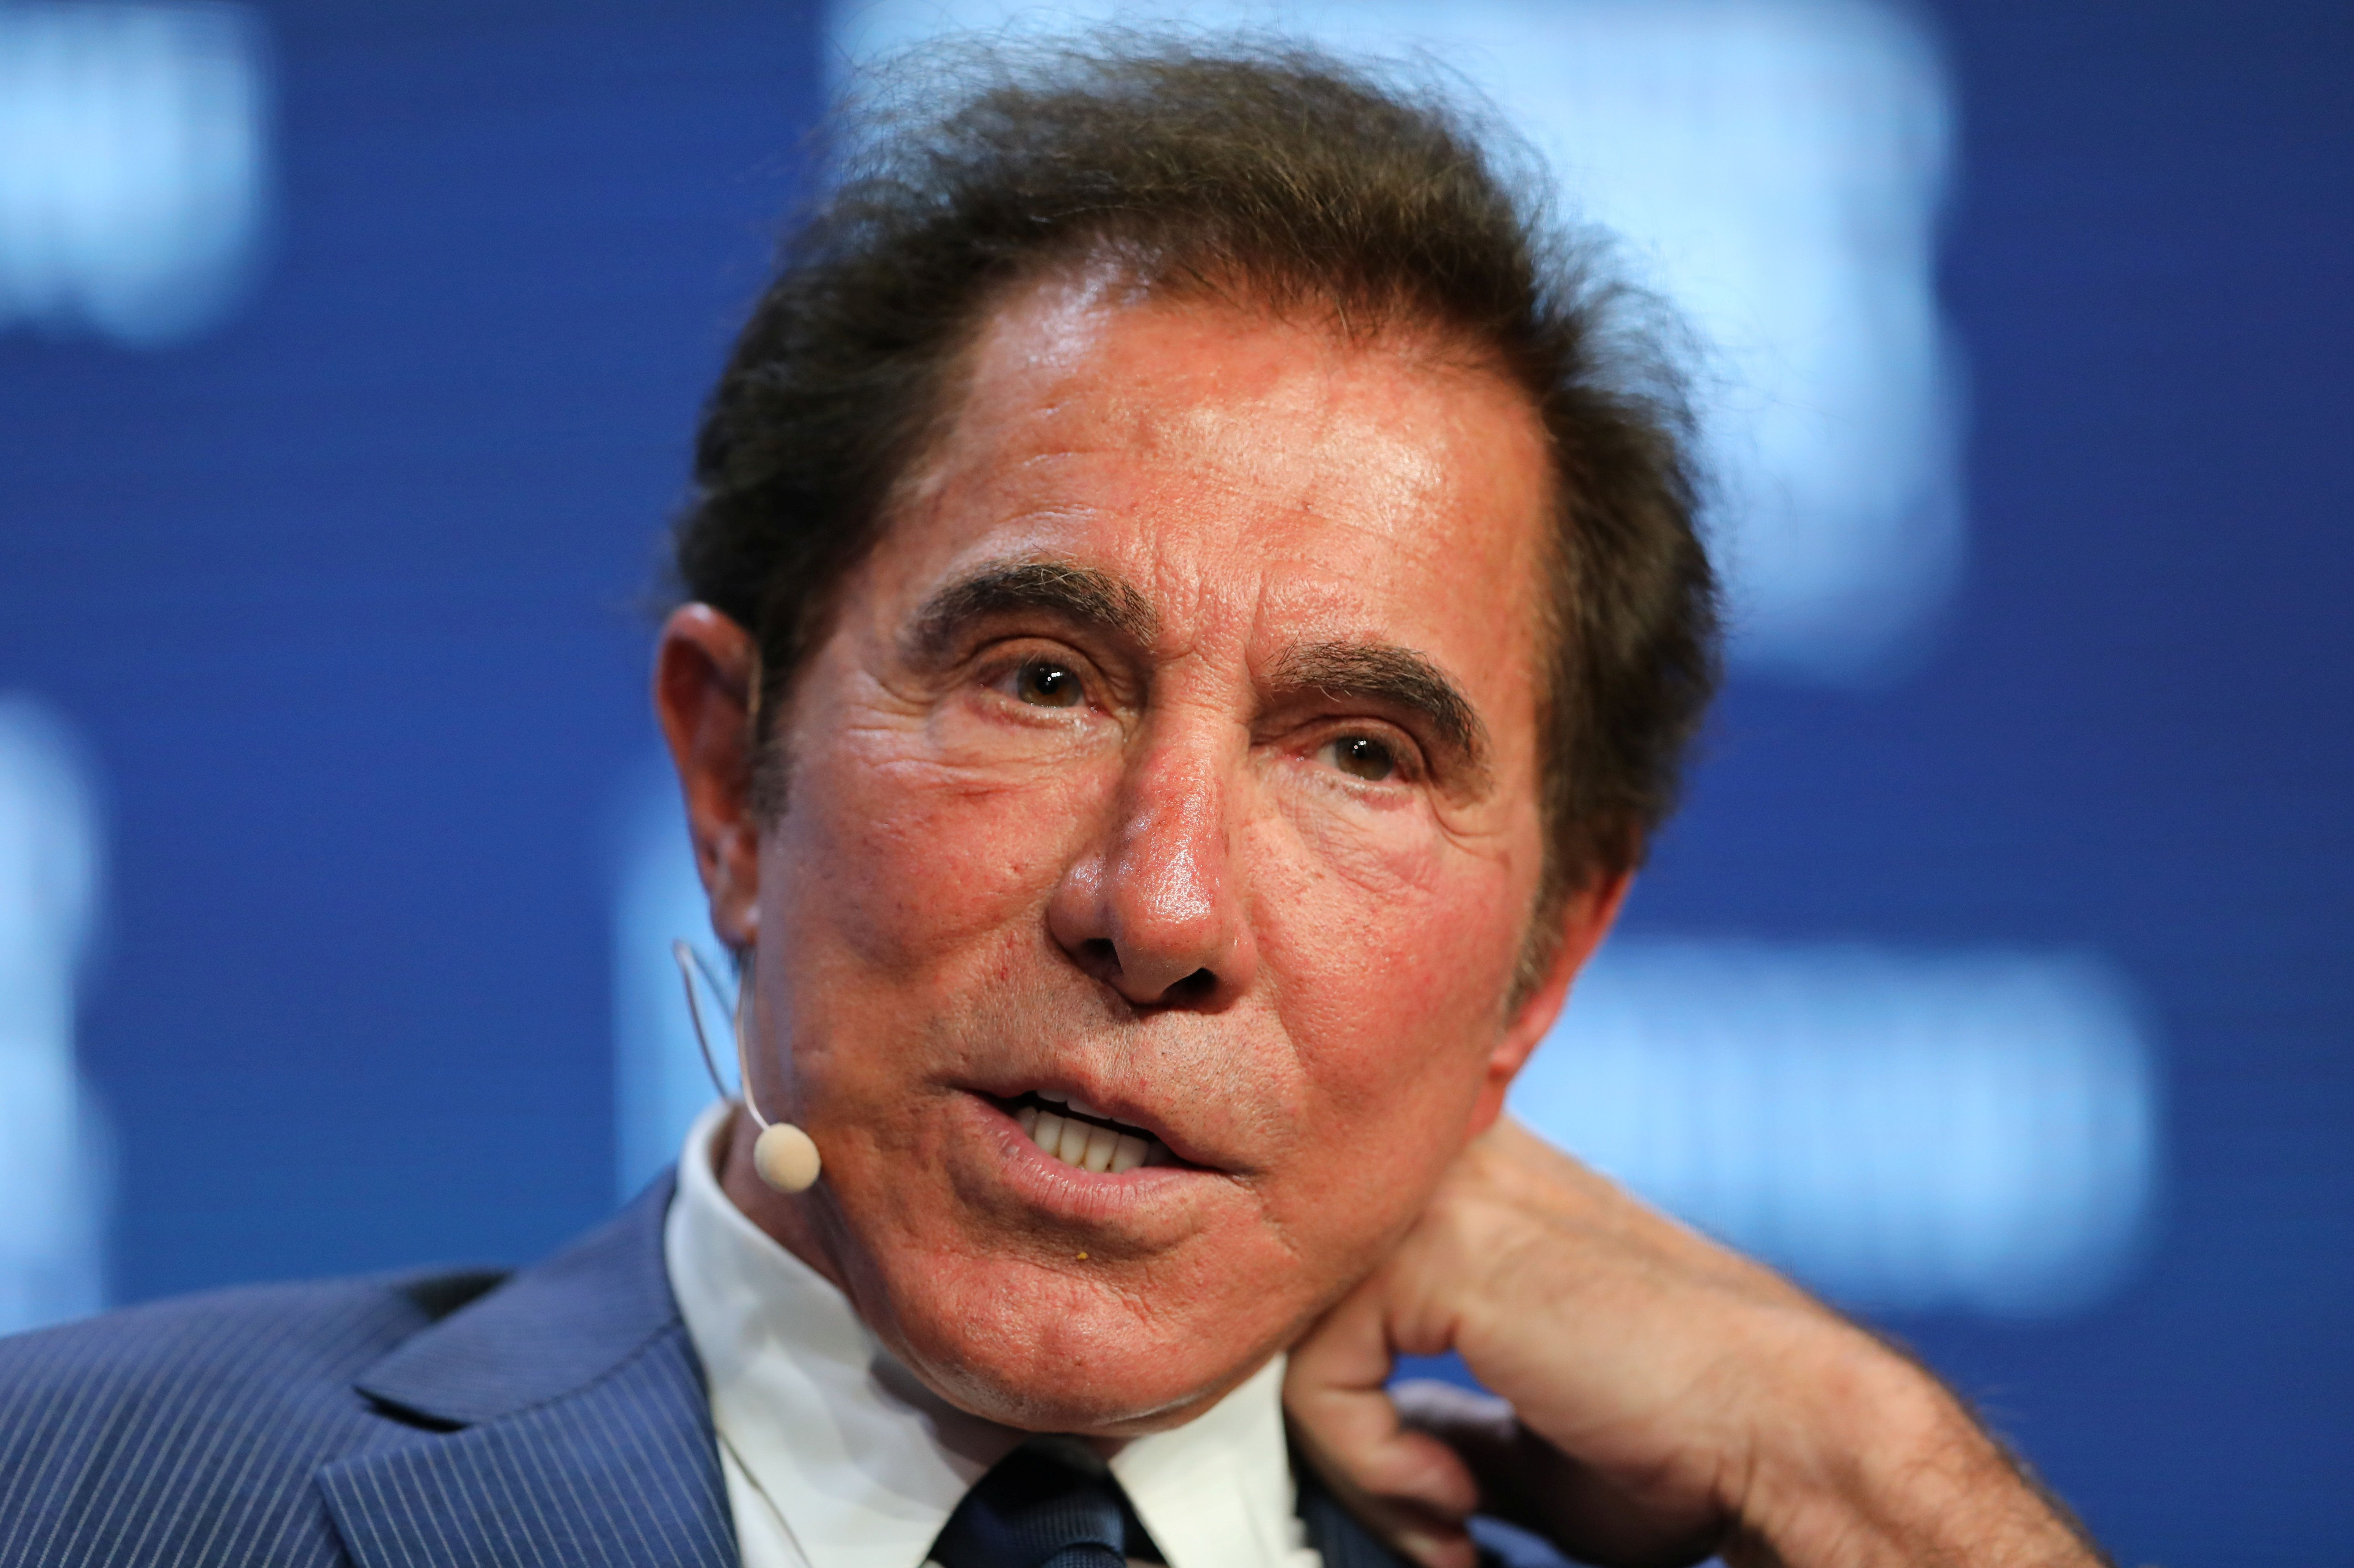 Allegations of sexual abuseby Steve Wynn, chairman and CEO of Wynn Resorts, go back decades, according to media reports